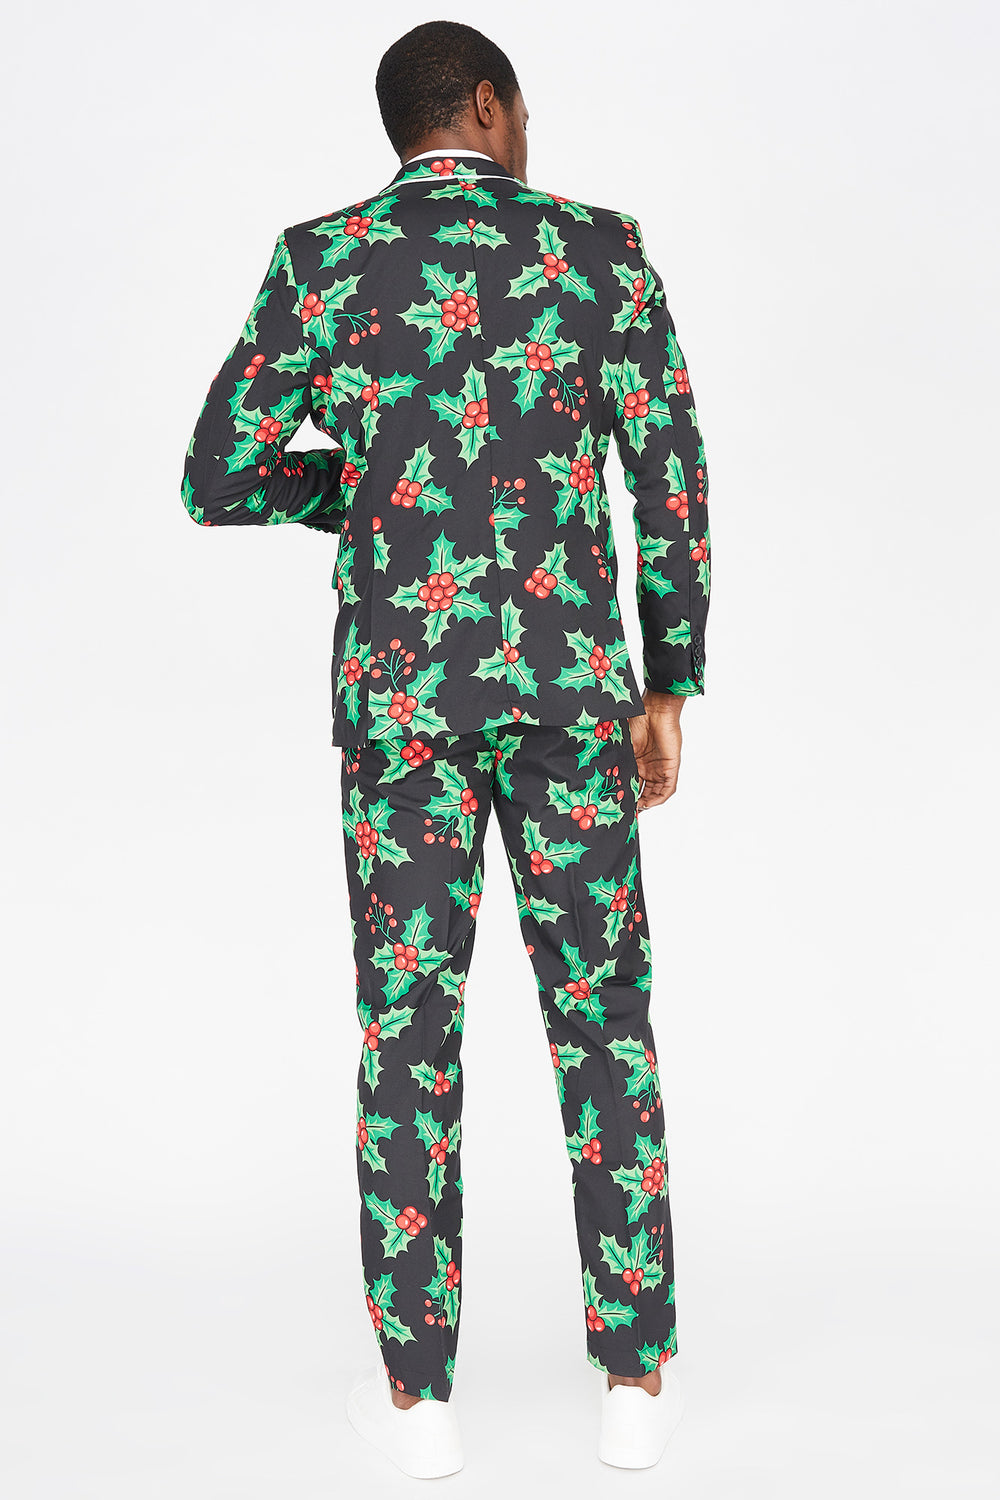 3-Piece Ugly Christmas Holly Printed Suit Black